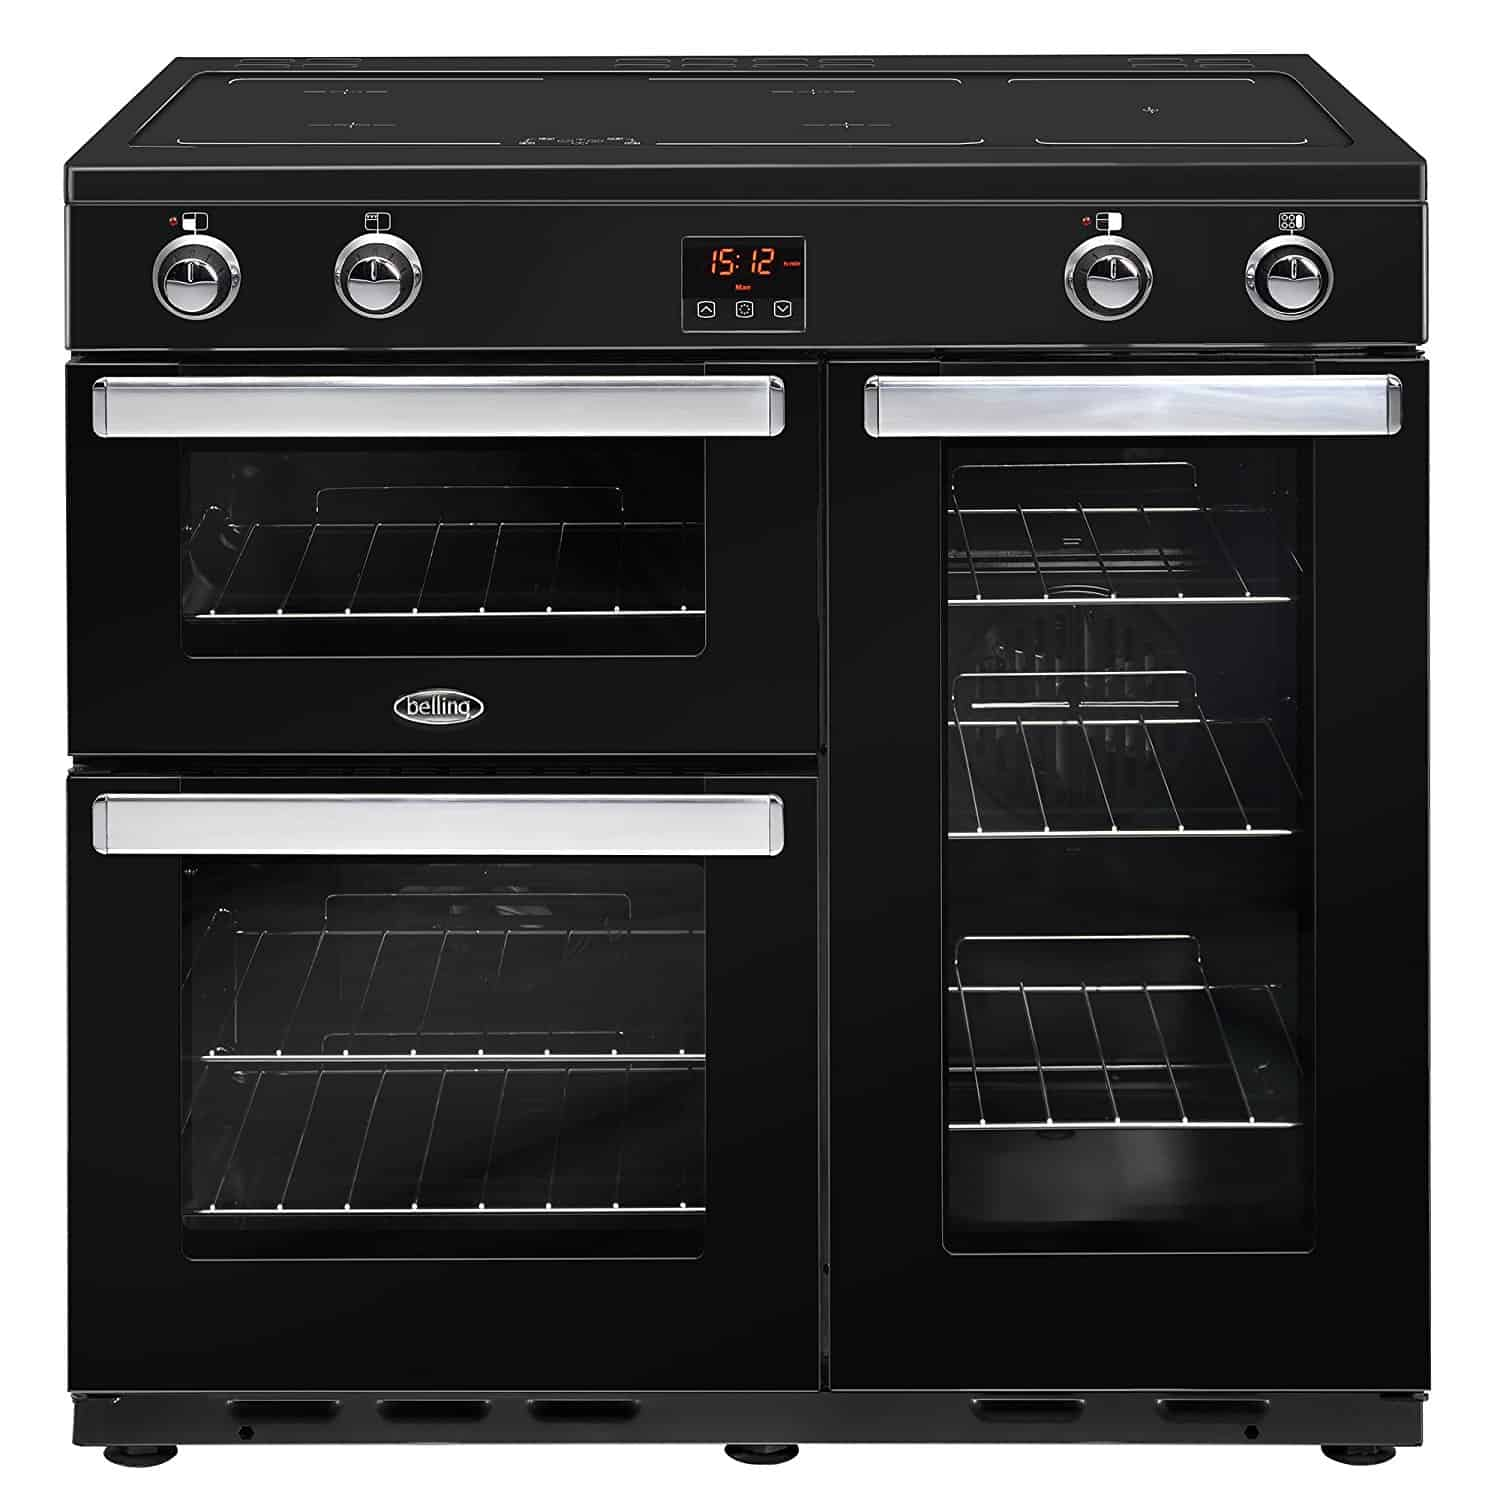 Belling Cookers  Which Cooker and Where to buy!